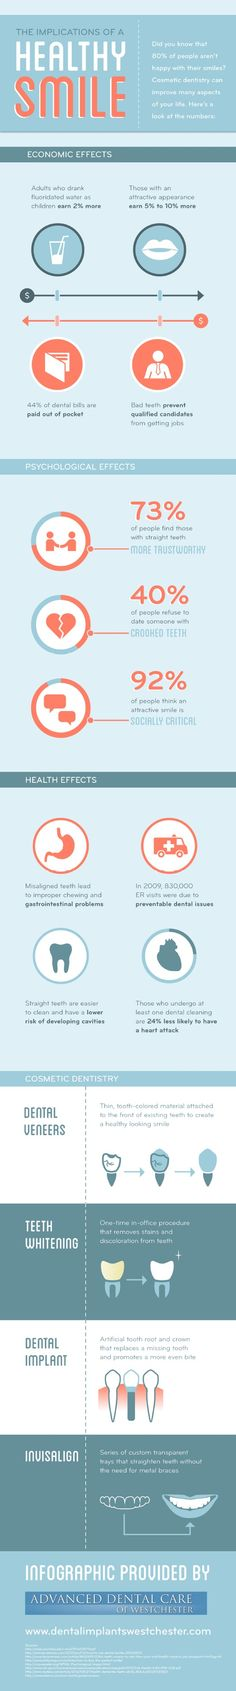 A smile is an investment! People with attractive appearances make 5-10% more money. Take a look at this infographic from a New Rochelle dentist to find out how to improve your appearance by enhancing your smile.